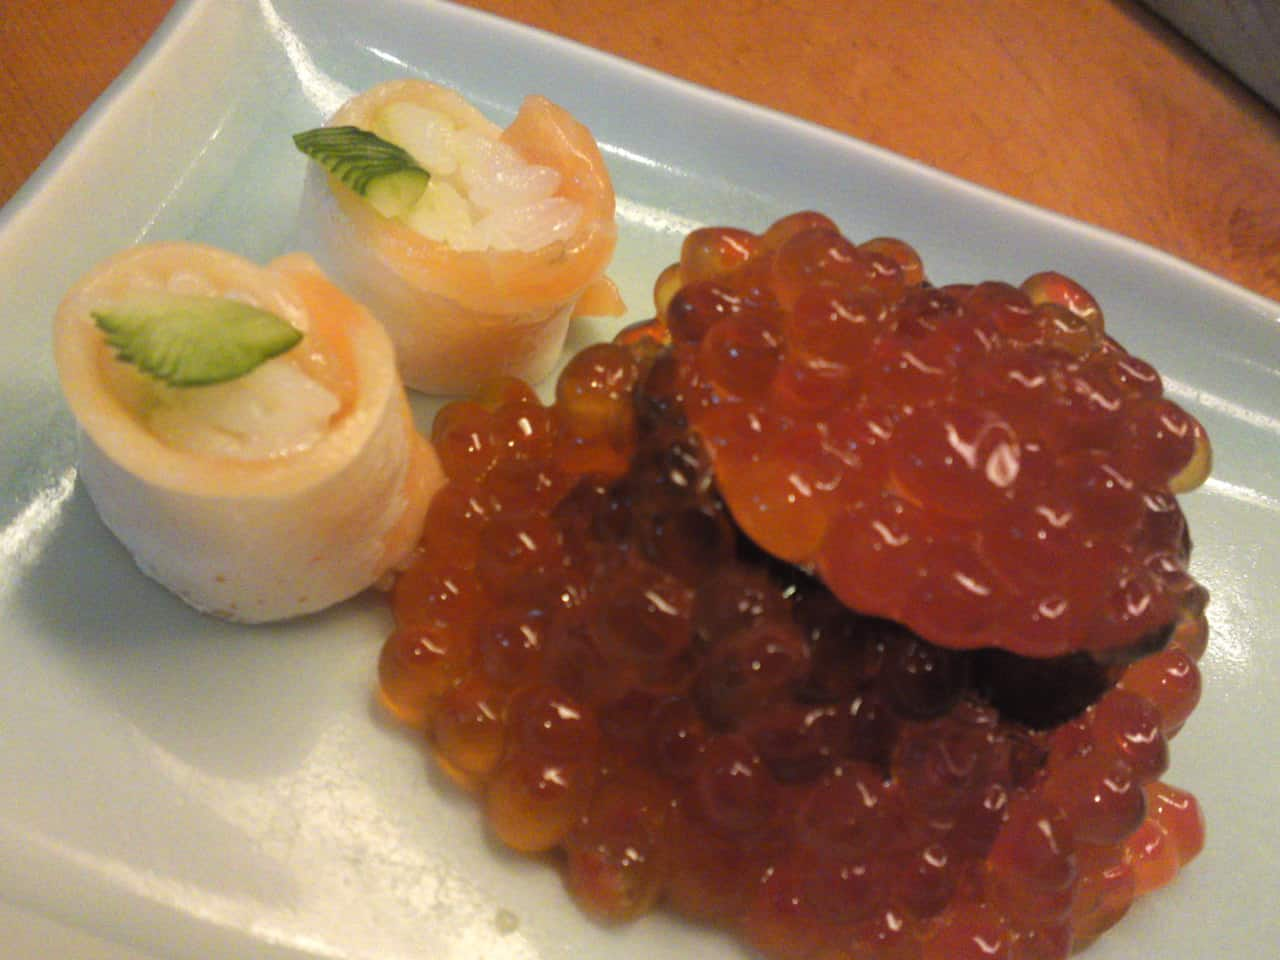 """A rare """"Oyako/Parent and Child"""" rendition of """"Ikura/salmon Roe"""" gunkan with its two """"kids in the form of small gunkan with raw salmon wrapped around minuscule rice balls"""